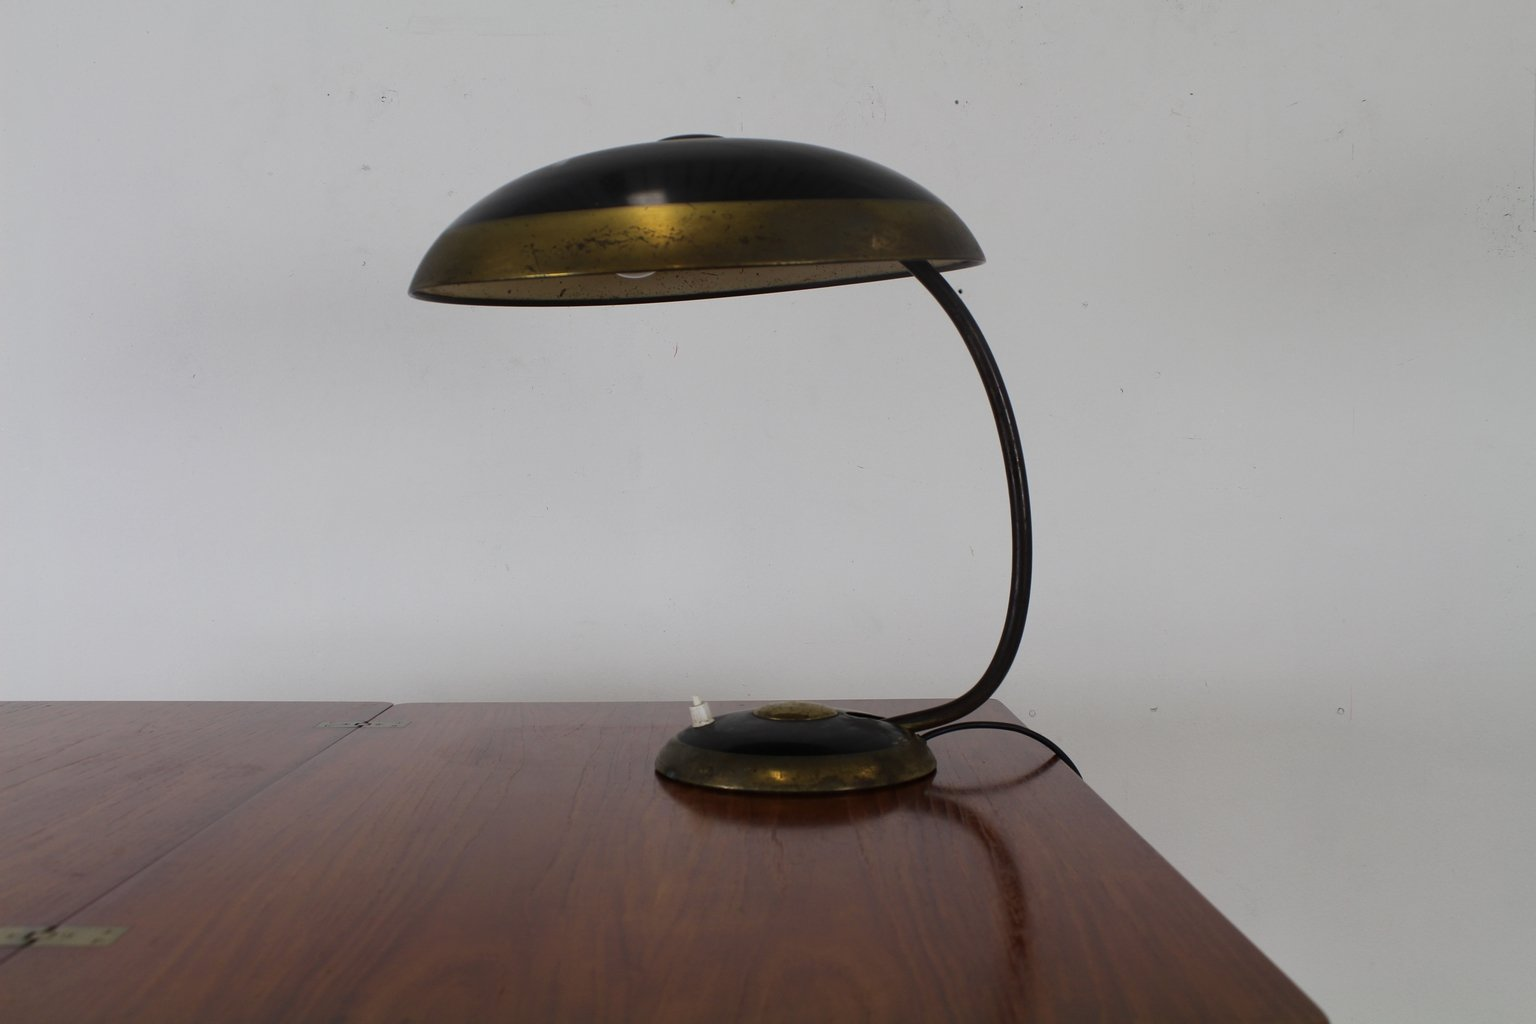 rounded german bauhaus desk lamp from help lampe 1959 for sale at pamono. Black Bedroom Furniture Sets. Home Design Ideas